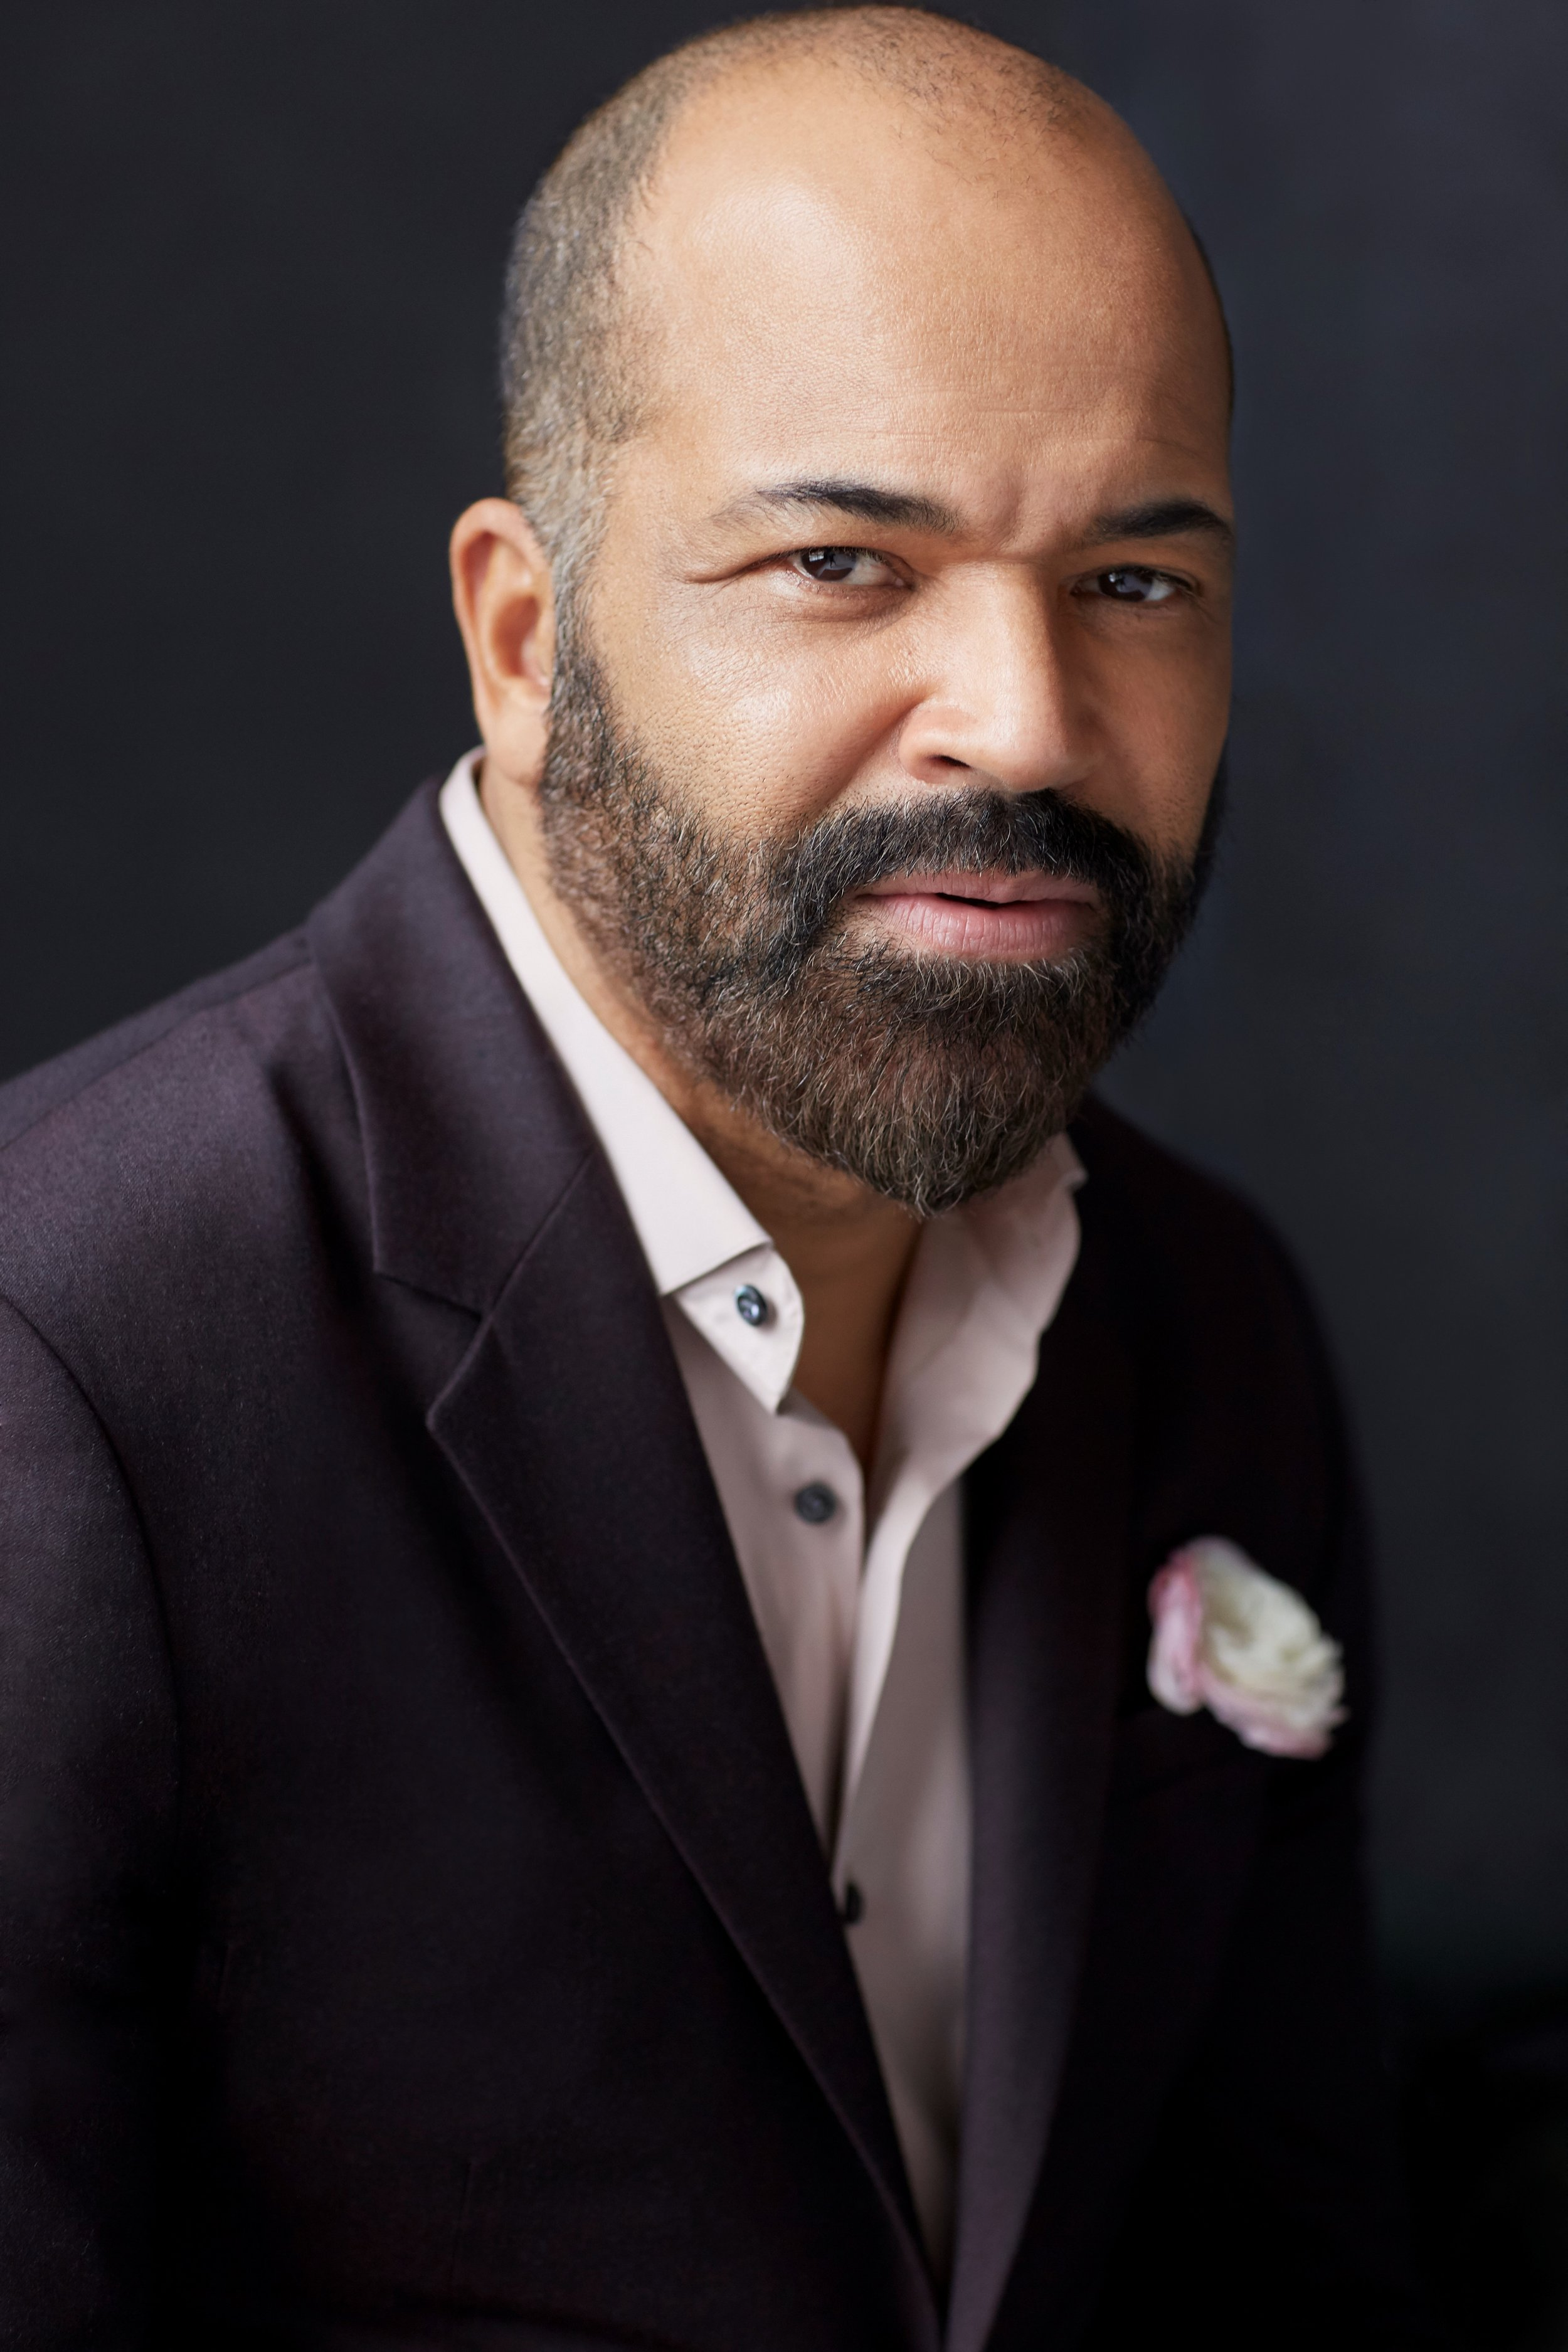 Jeffrey Wright – Award-winning Actor & Activist